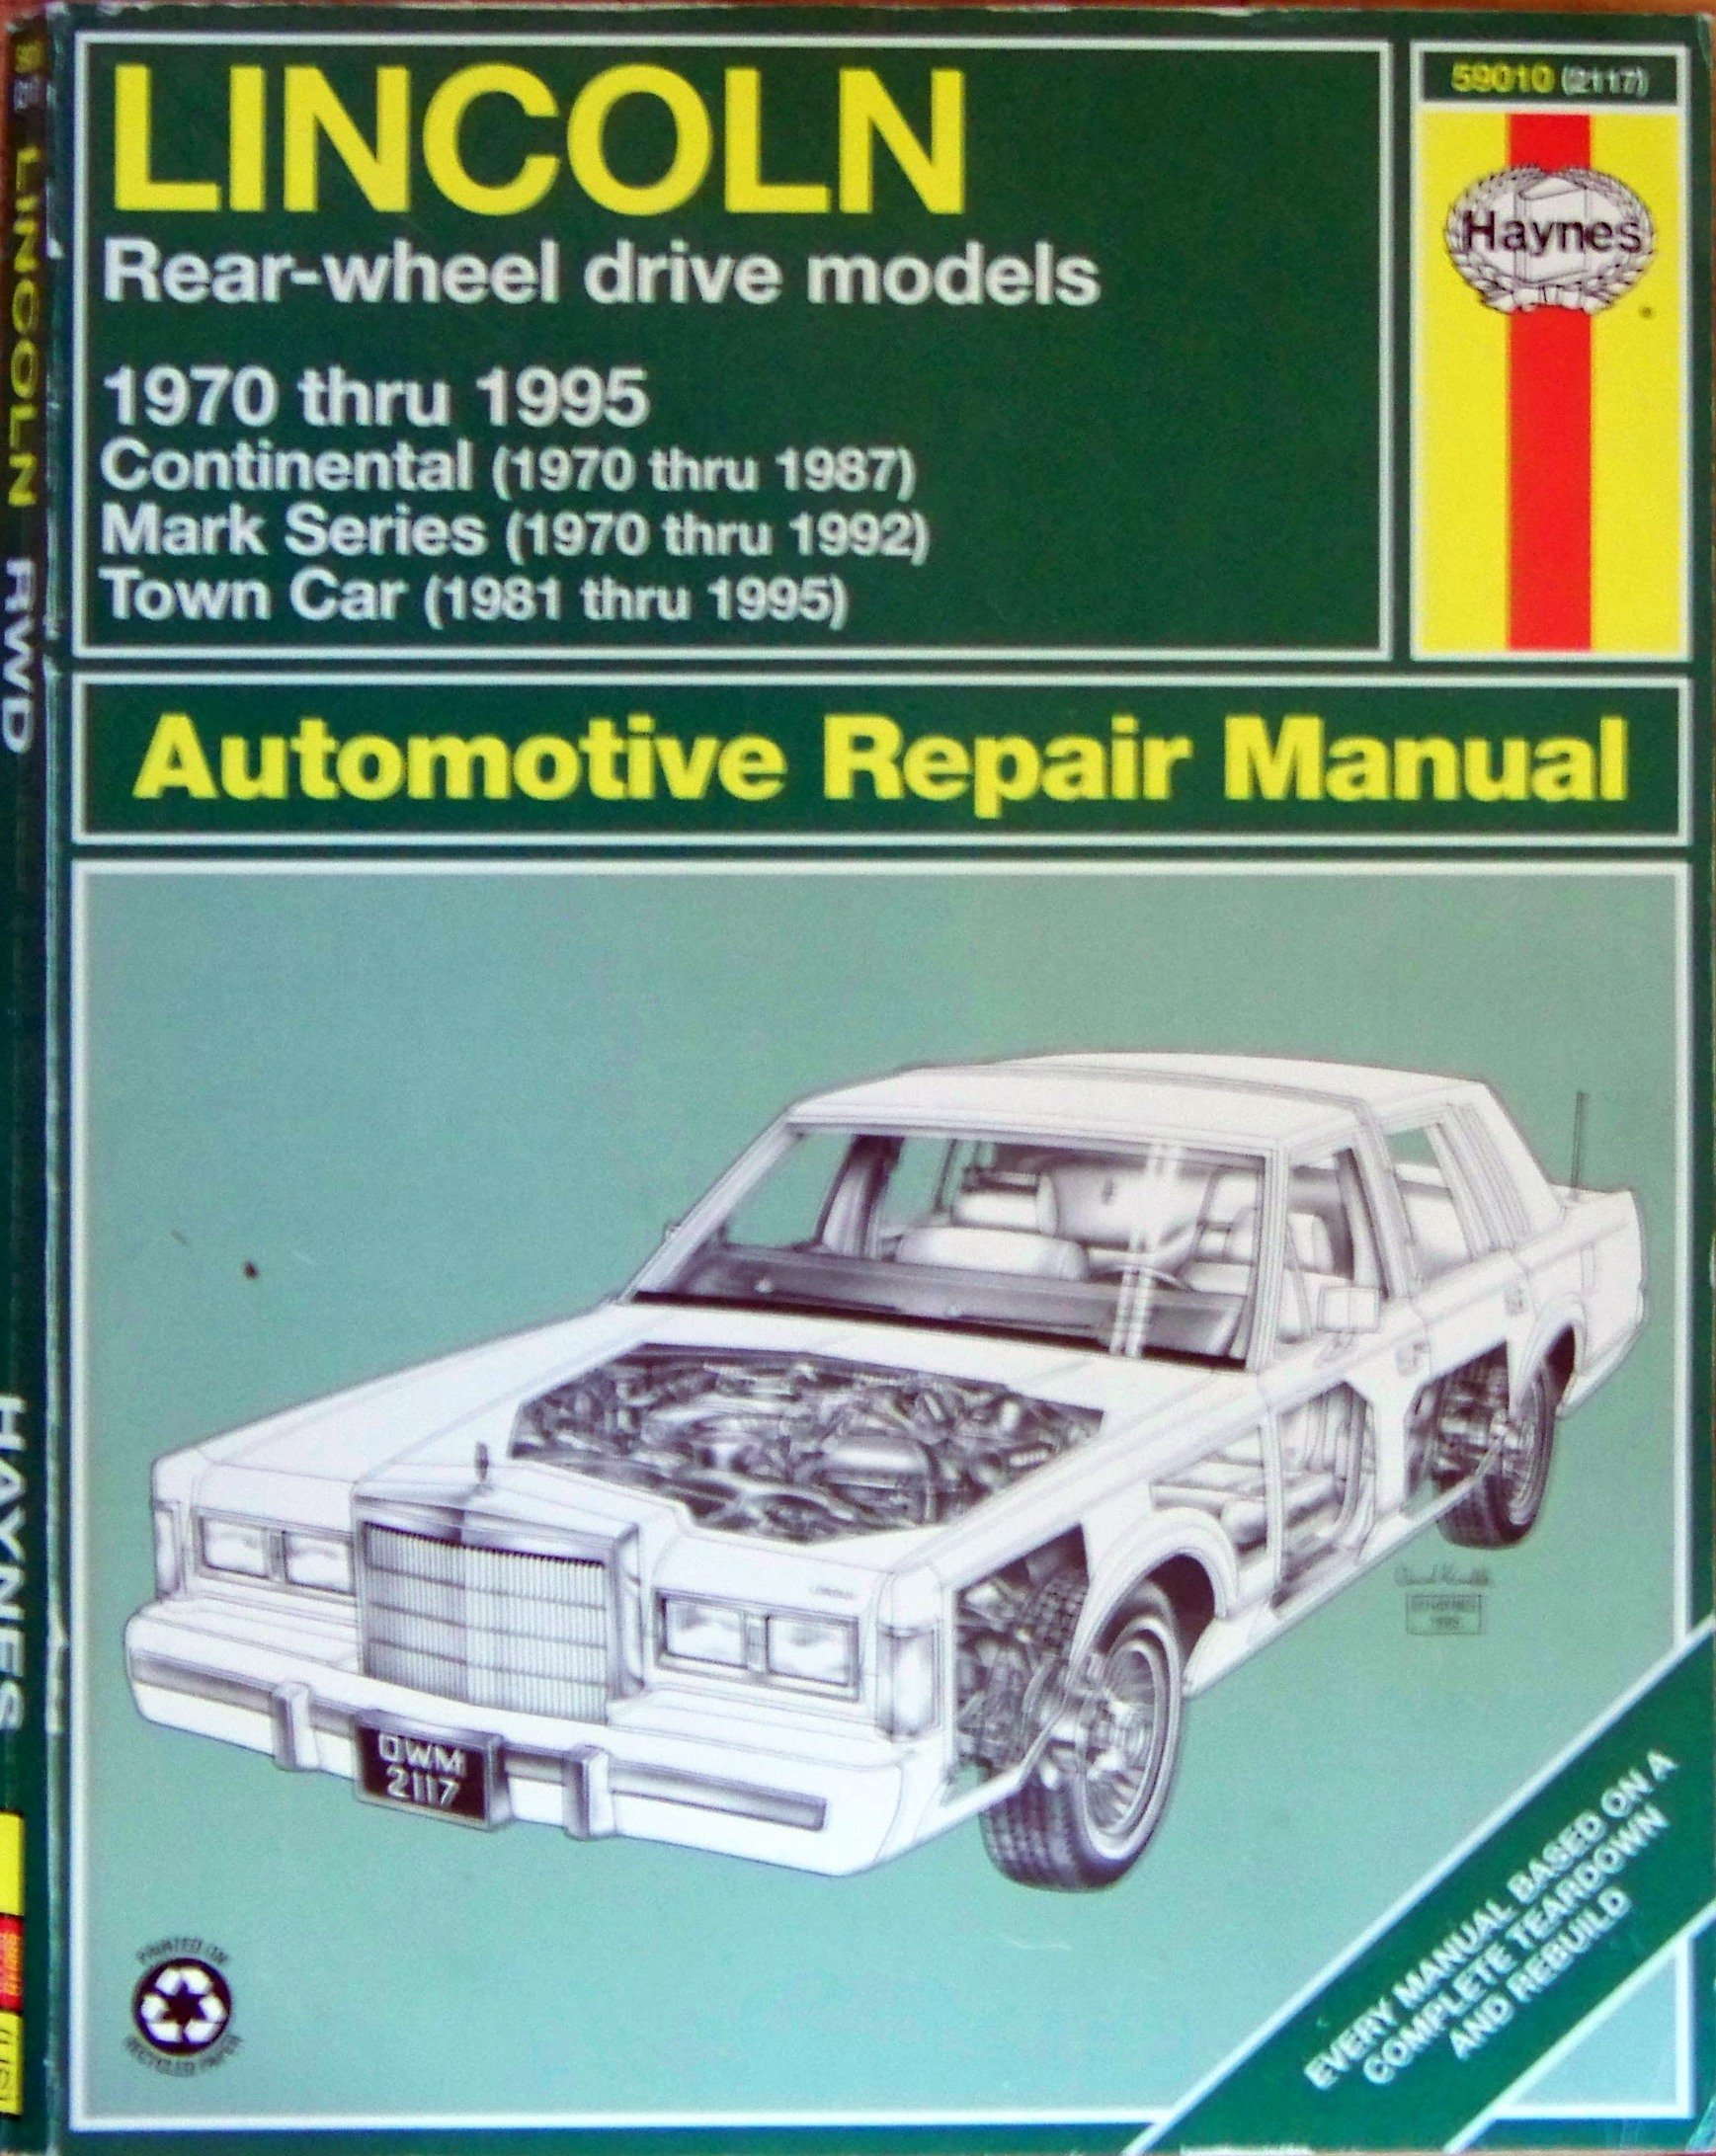 lincoln rear wheel drive automotive repair manual 1970 95 haynes rh amazon com 1985 Lincoln Town Car 1985 Lincoln Town Car